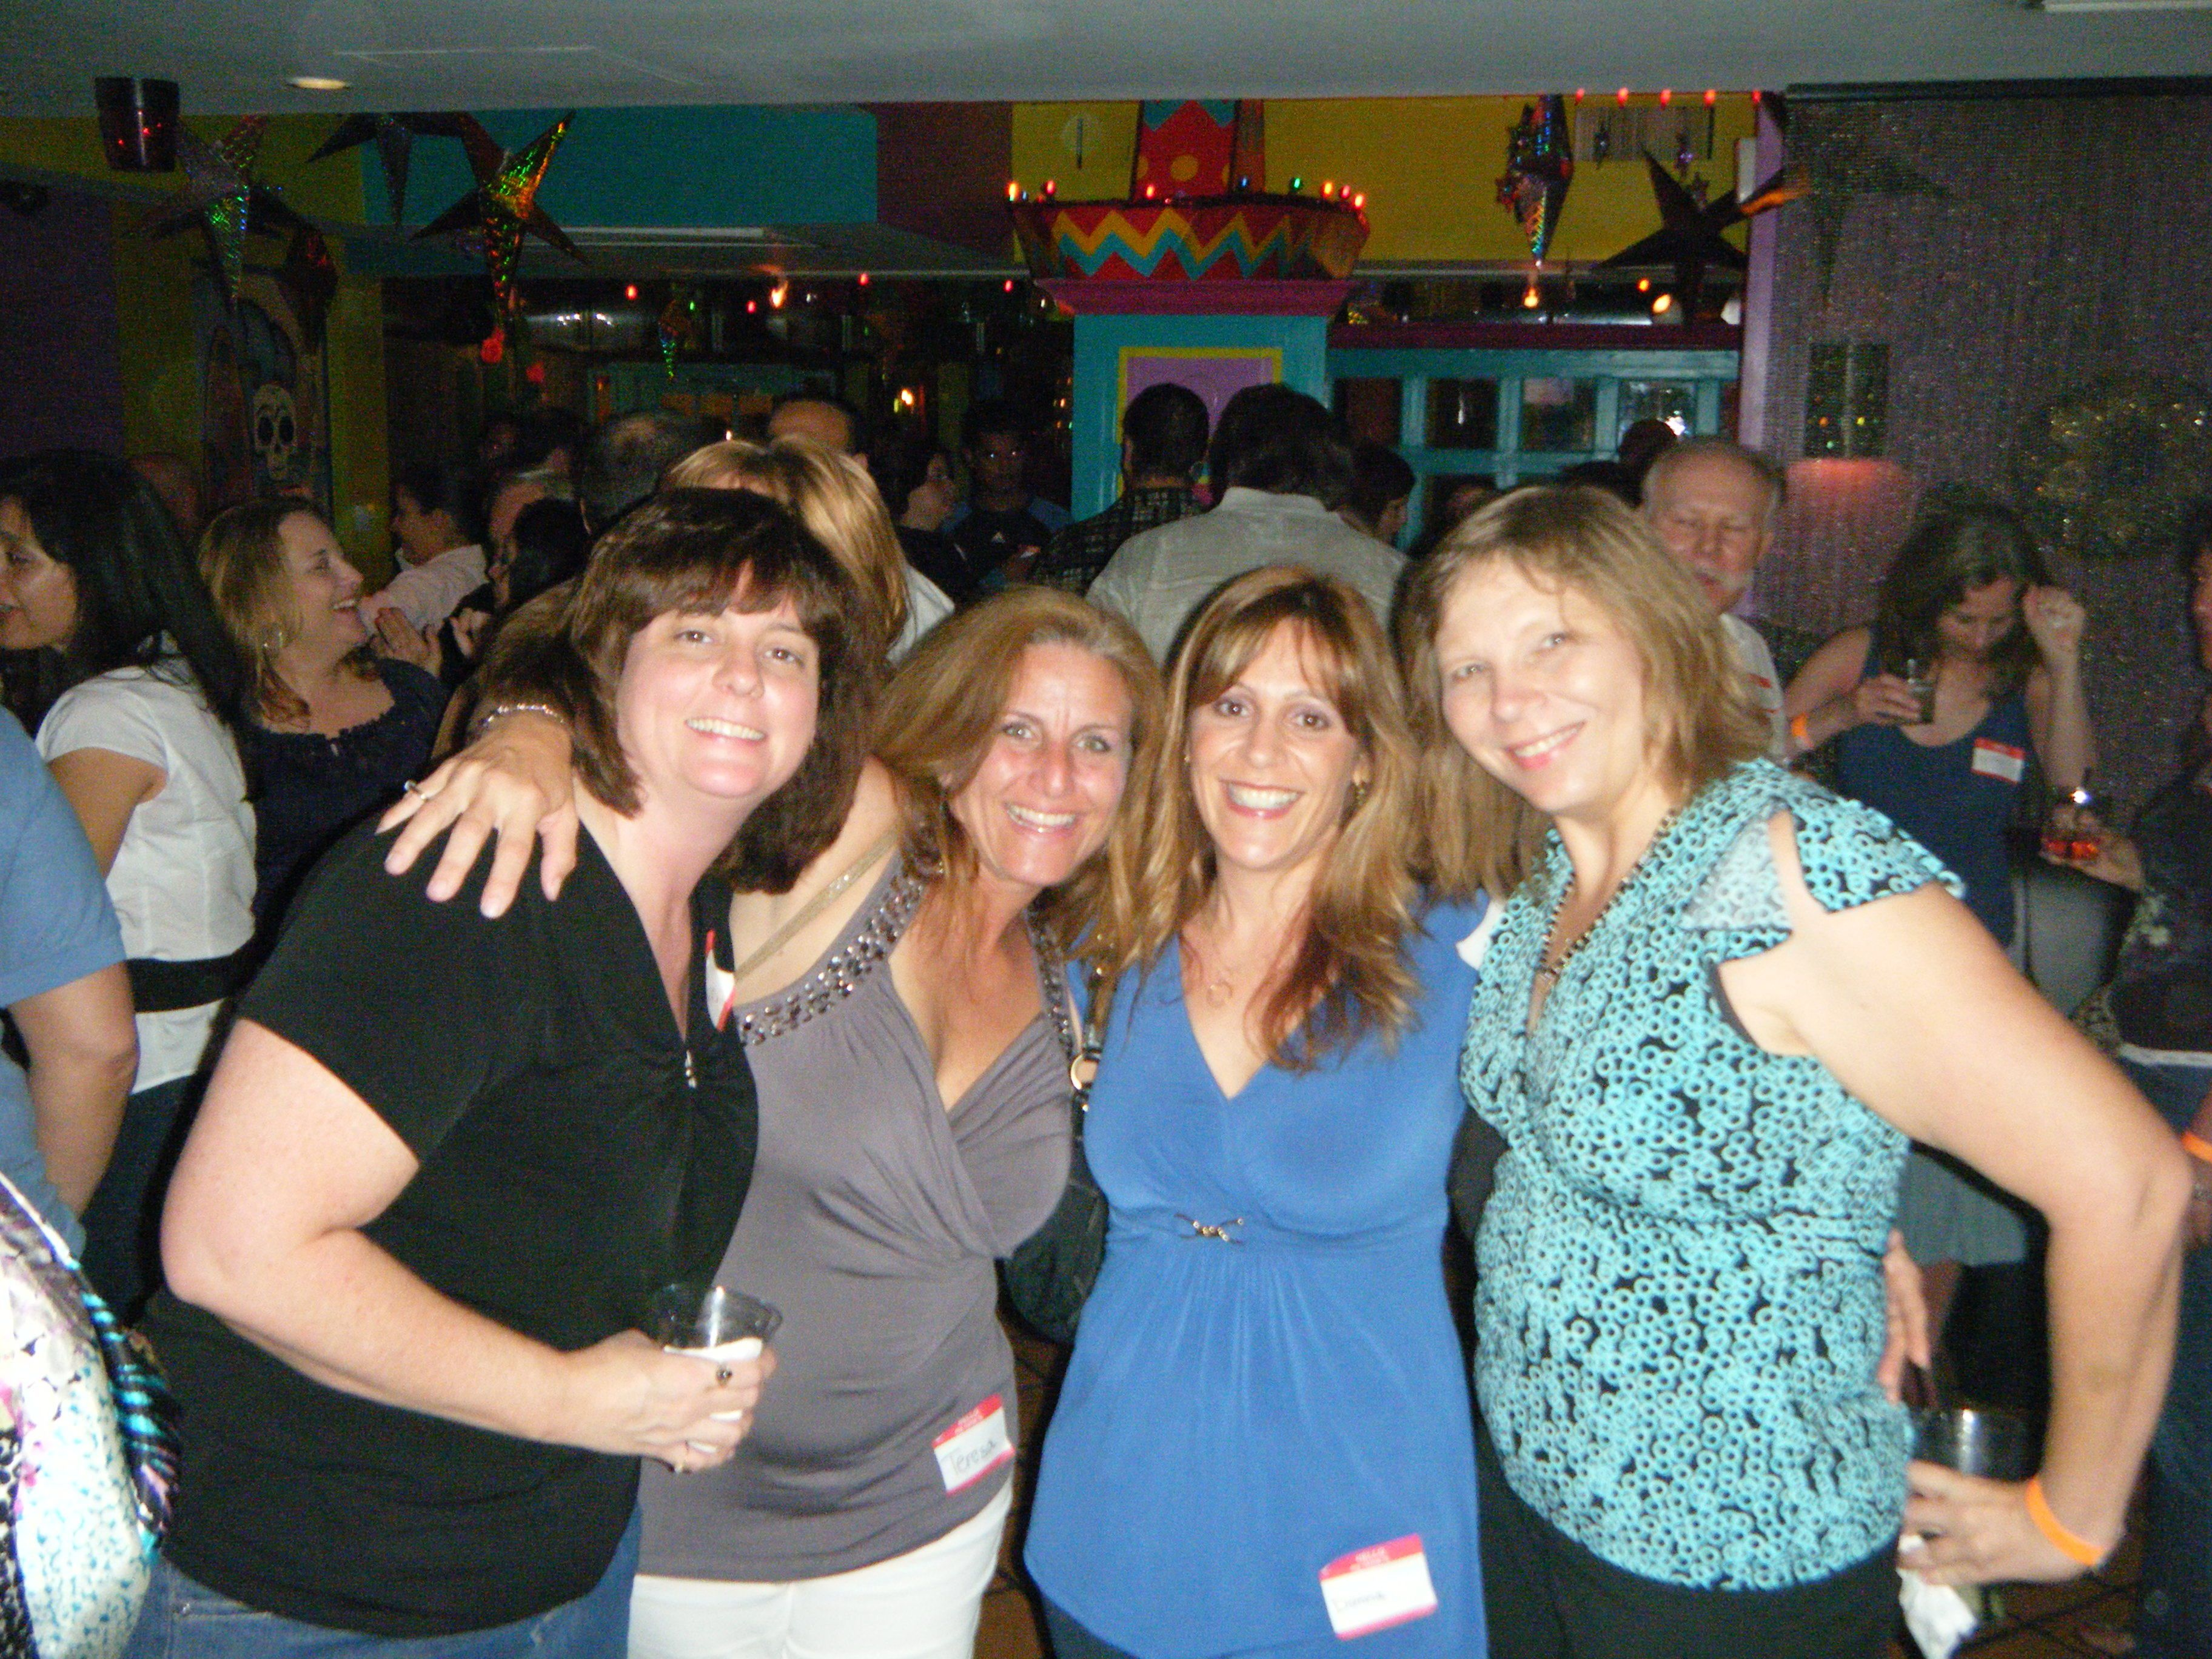 Ft lauderdale places to meet singles